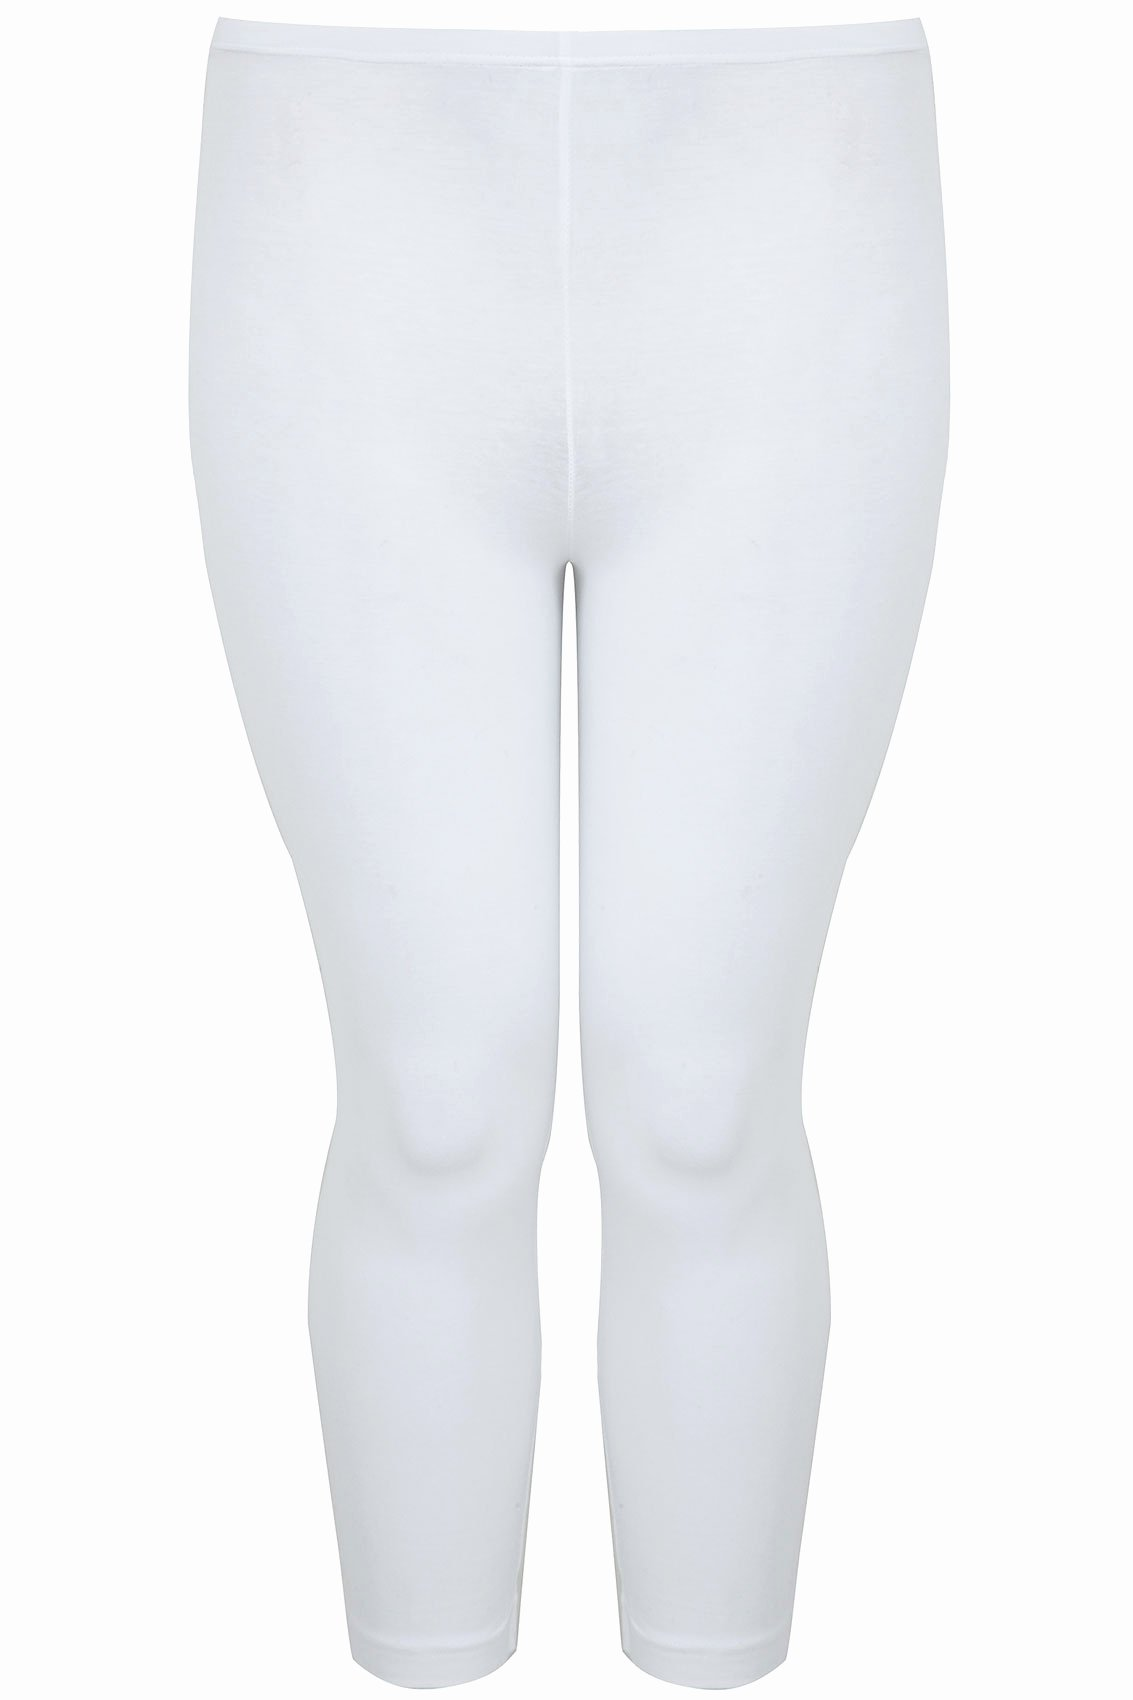 Product Line Card Template Beautiful Weiße 3 4 Baumwoll Elasthan Leggins Plus Size Gr 44 62